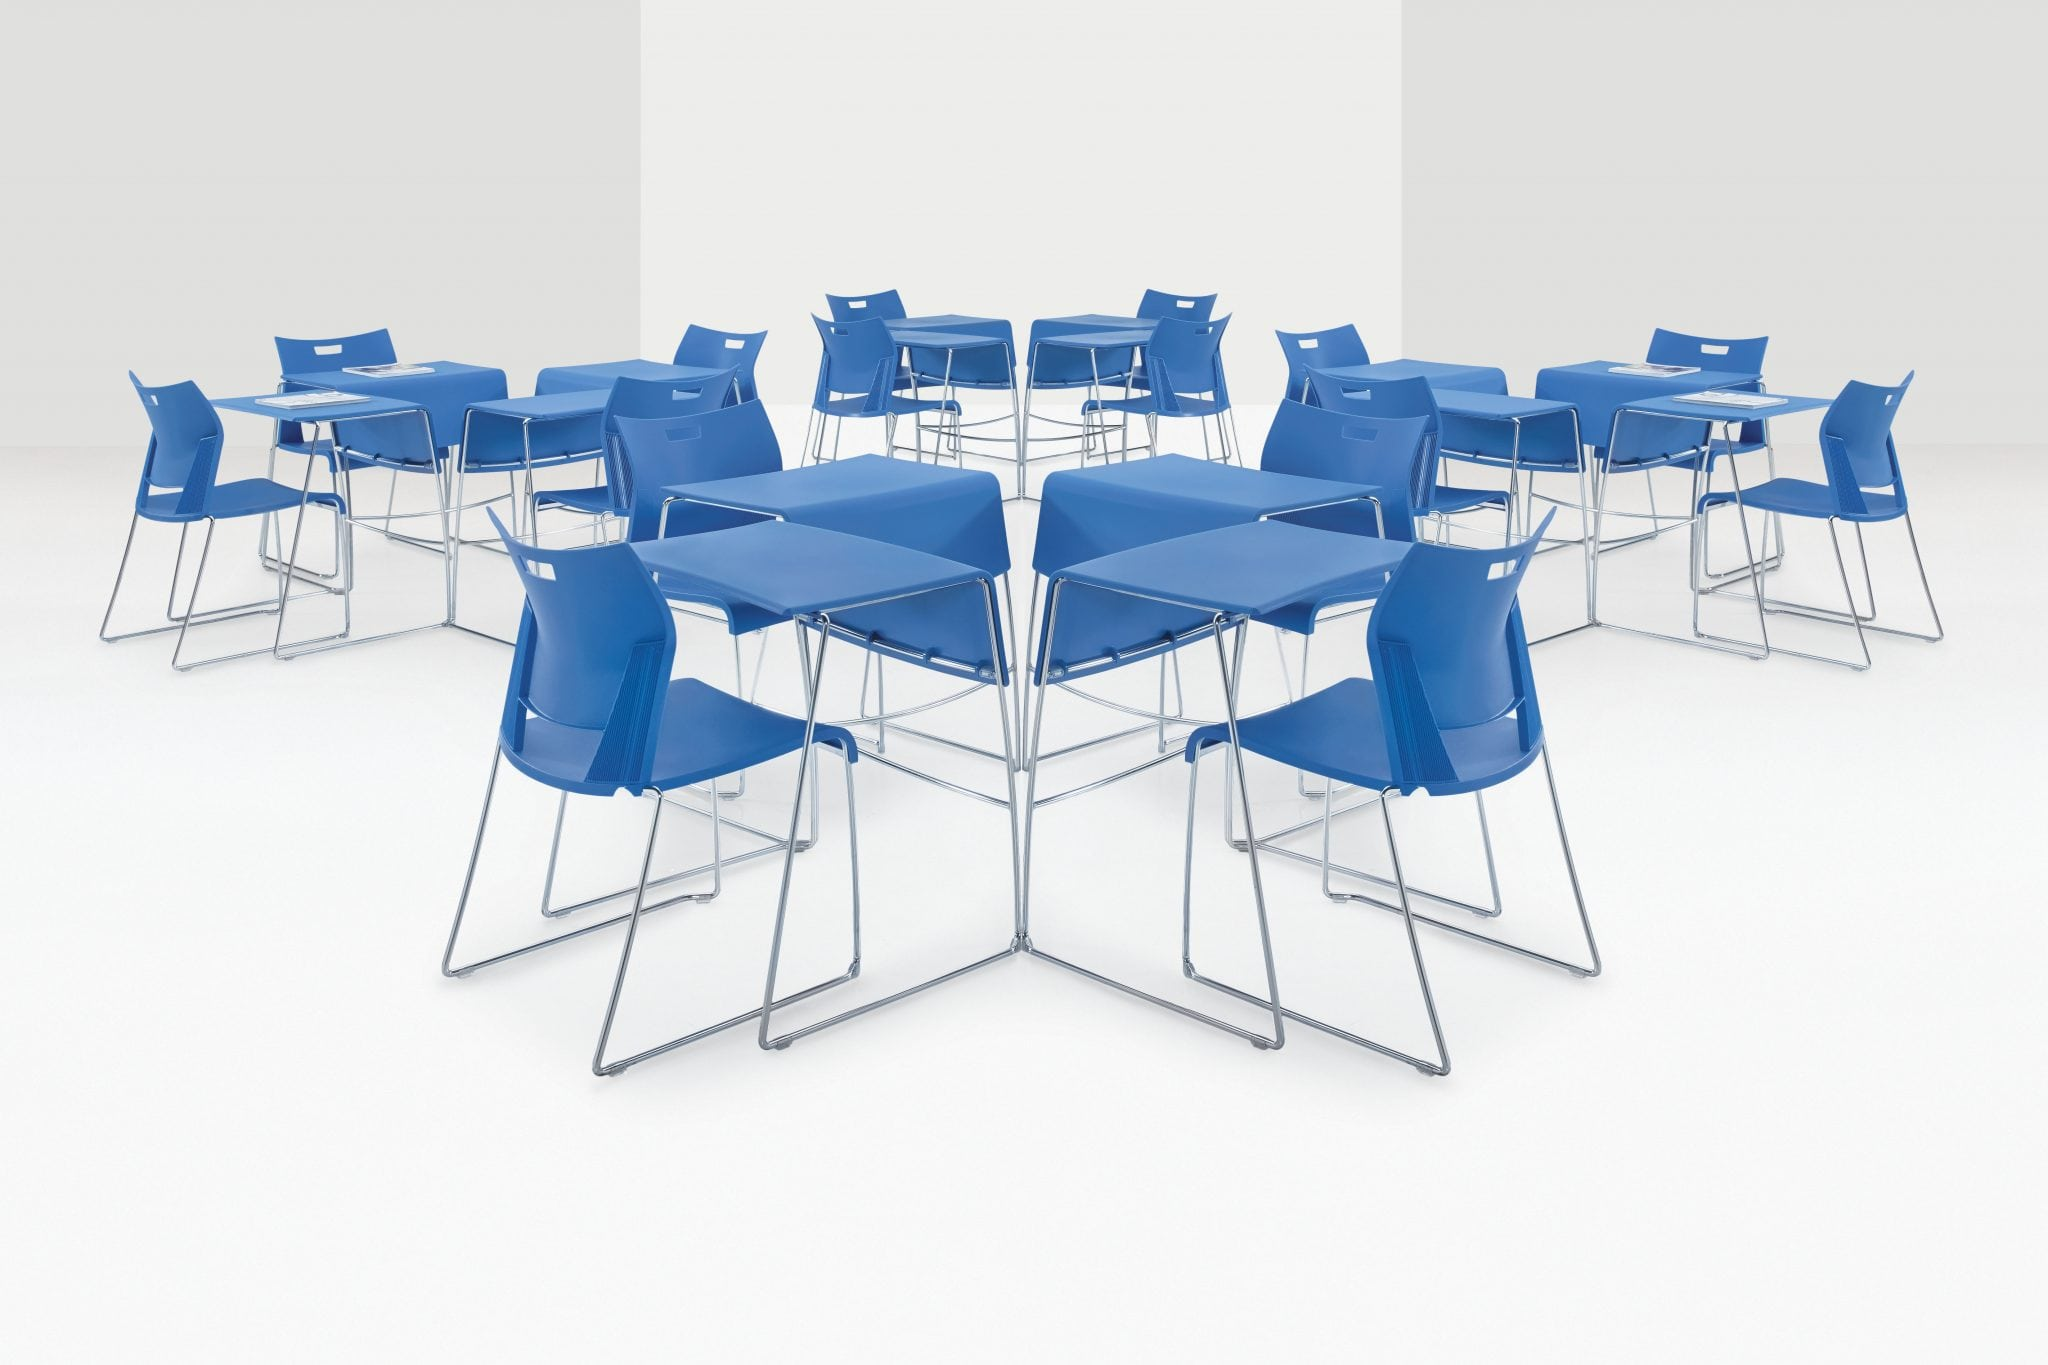 The Duet Tables - easy to stack and store, great for a meeting and eating space